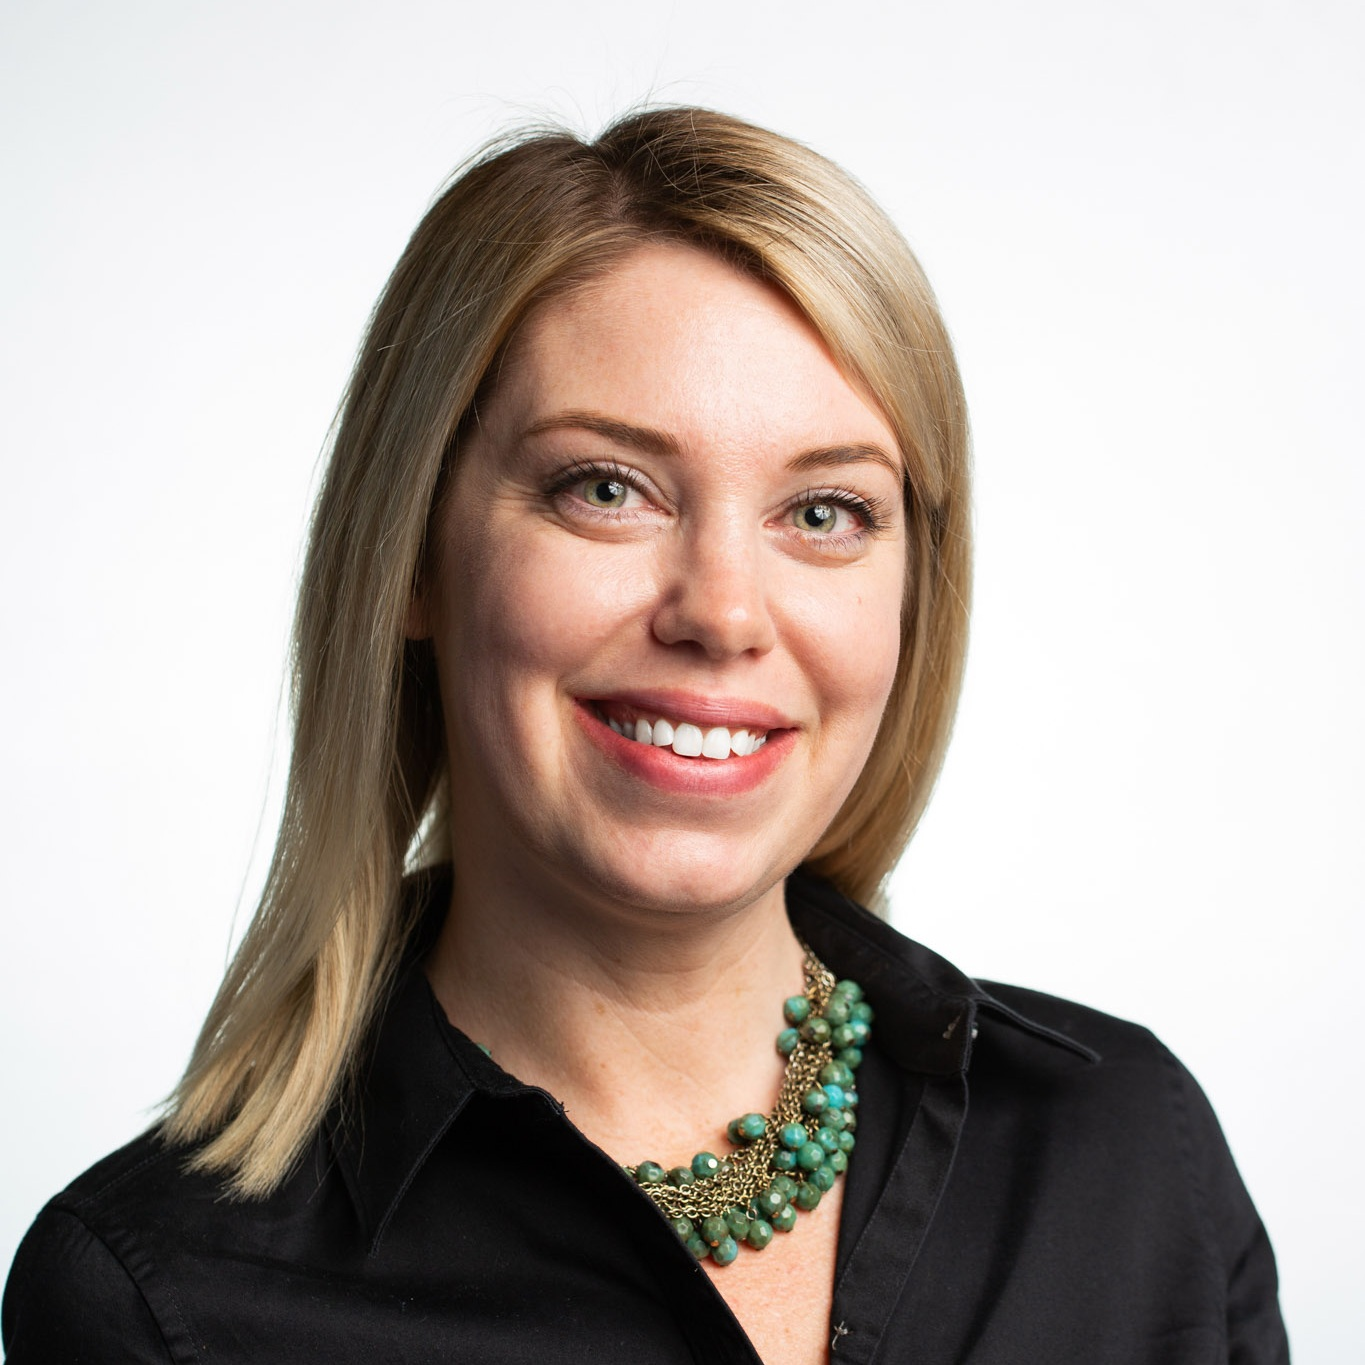 Angel Umberger - Client Experience Manager